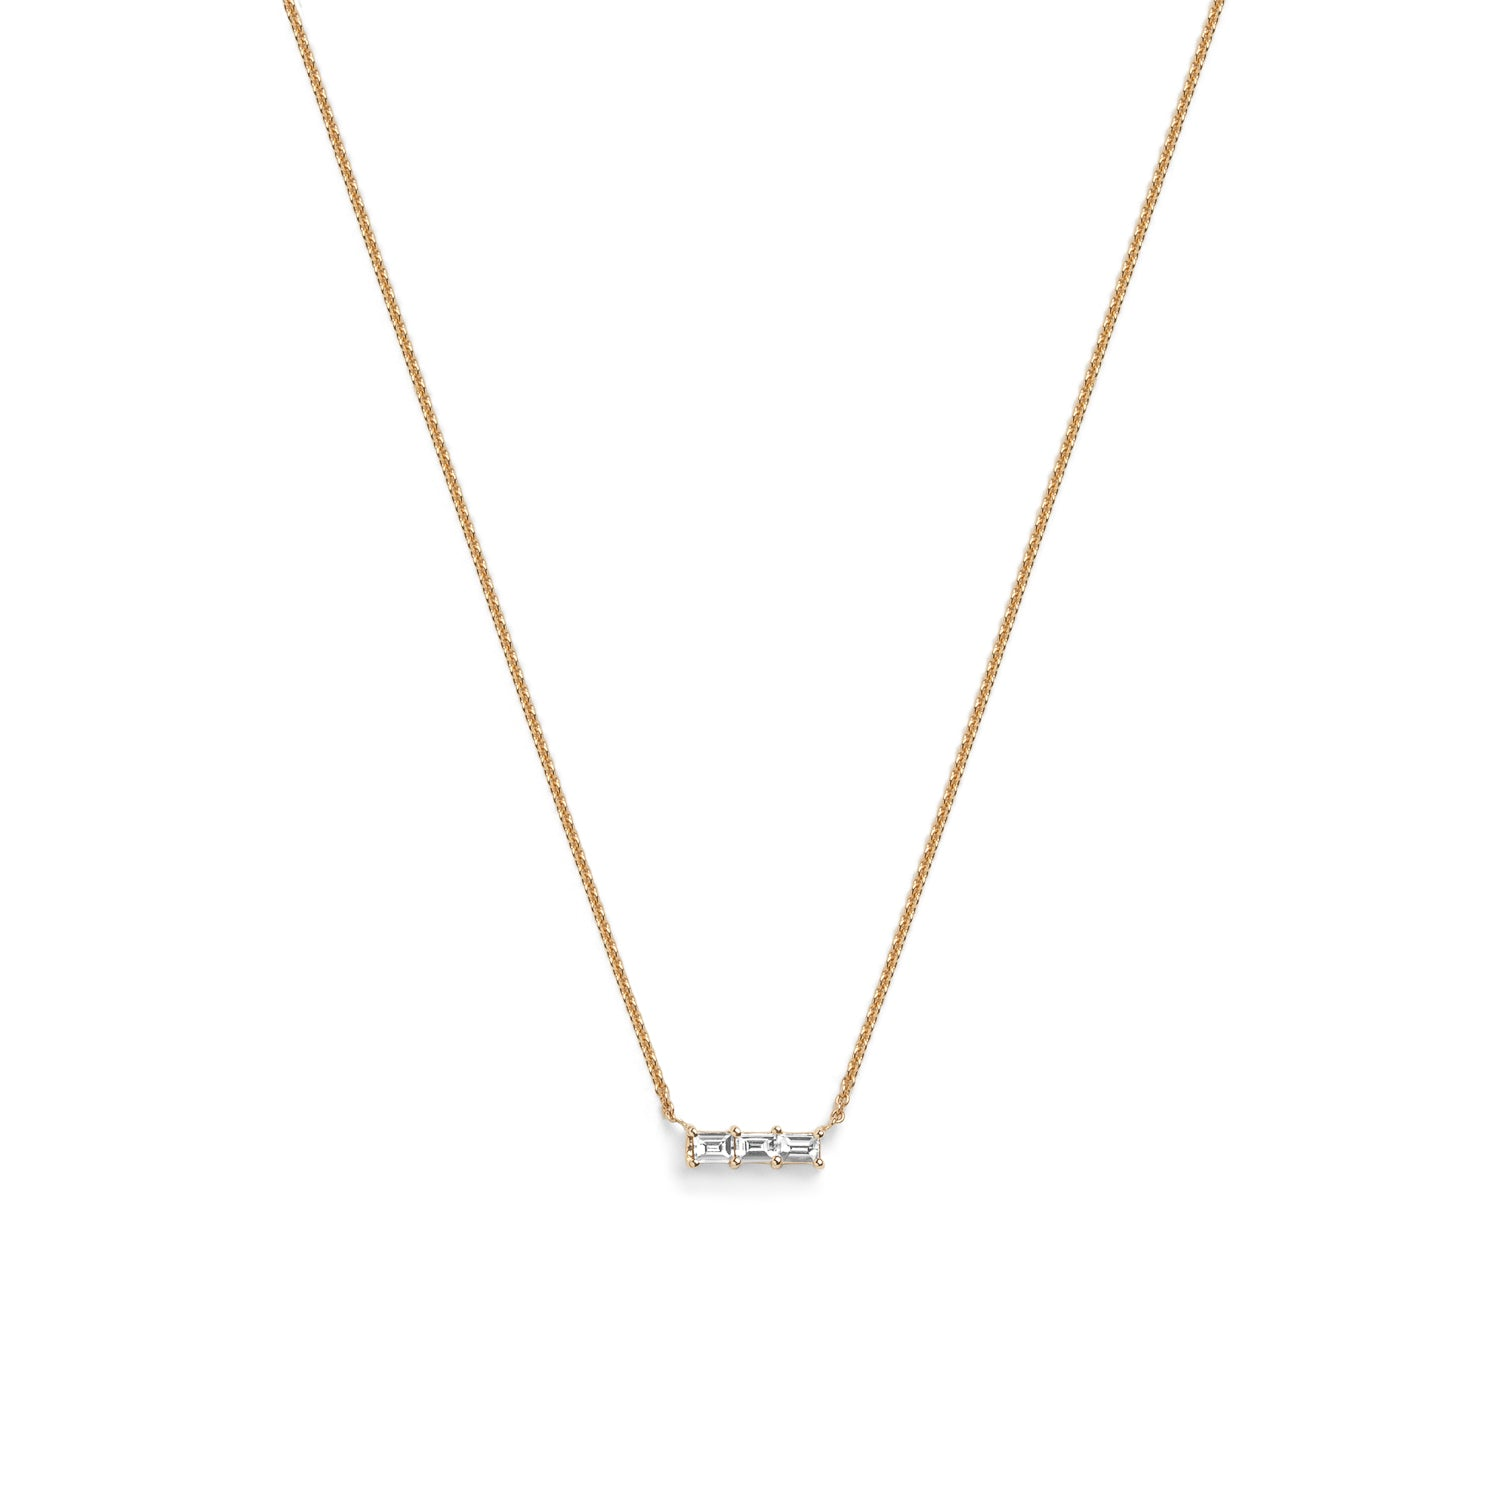 Selin Kent 14K Rhea Necklace with Three White Diamond Baguettes